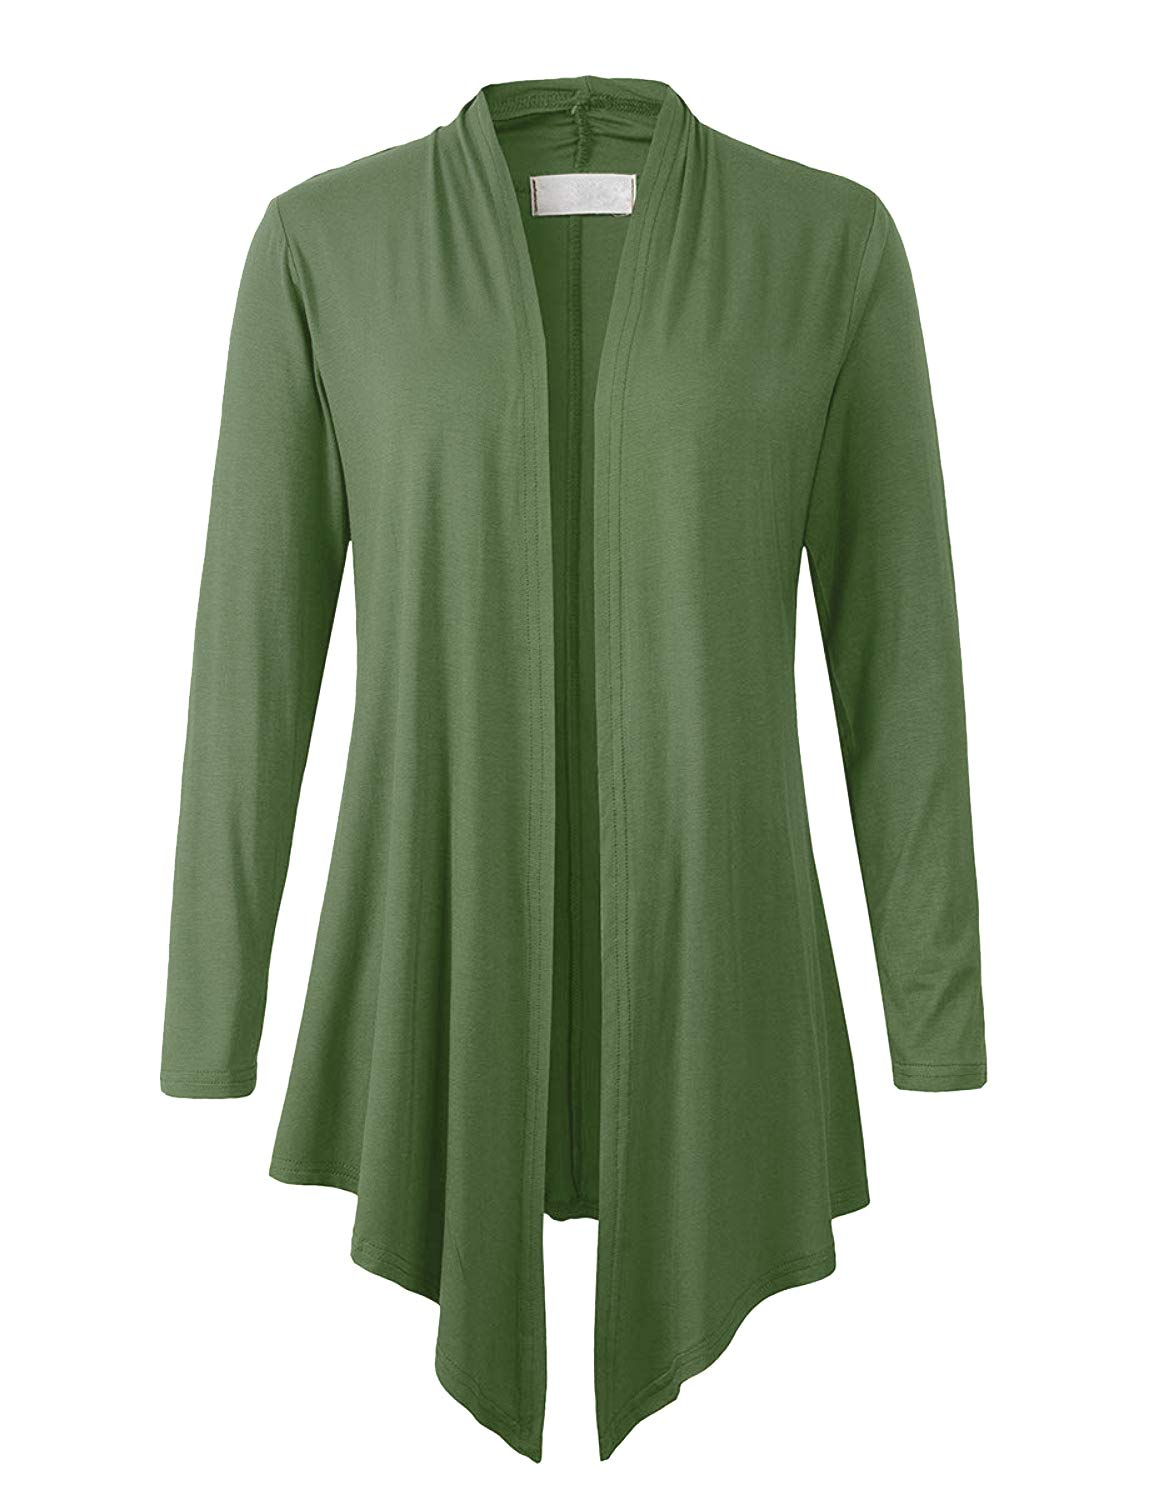 Eanklosco Women Open Front Cardigan Plus Size Drape Long Sleeve Coat (Army Green, L)